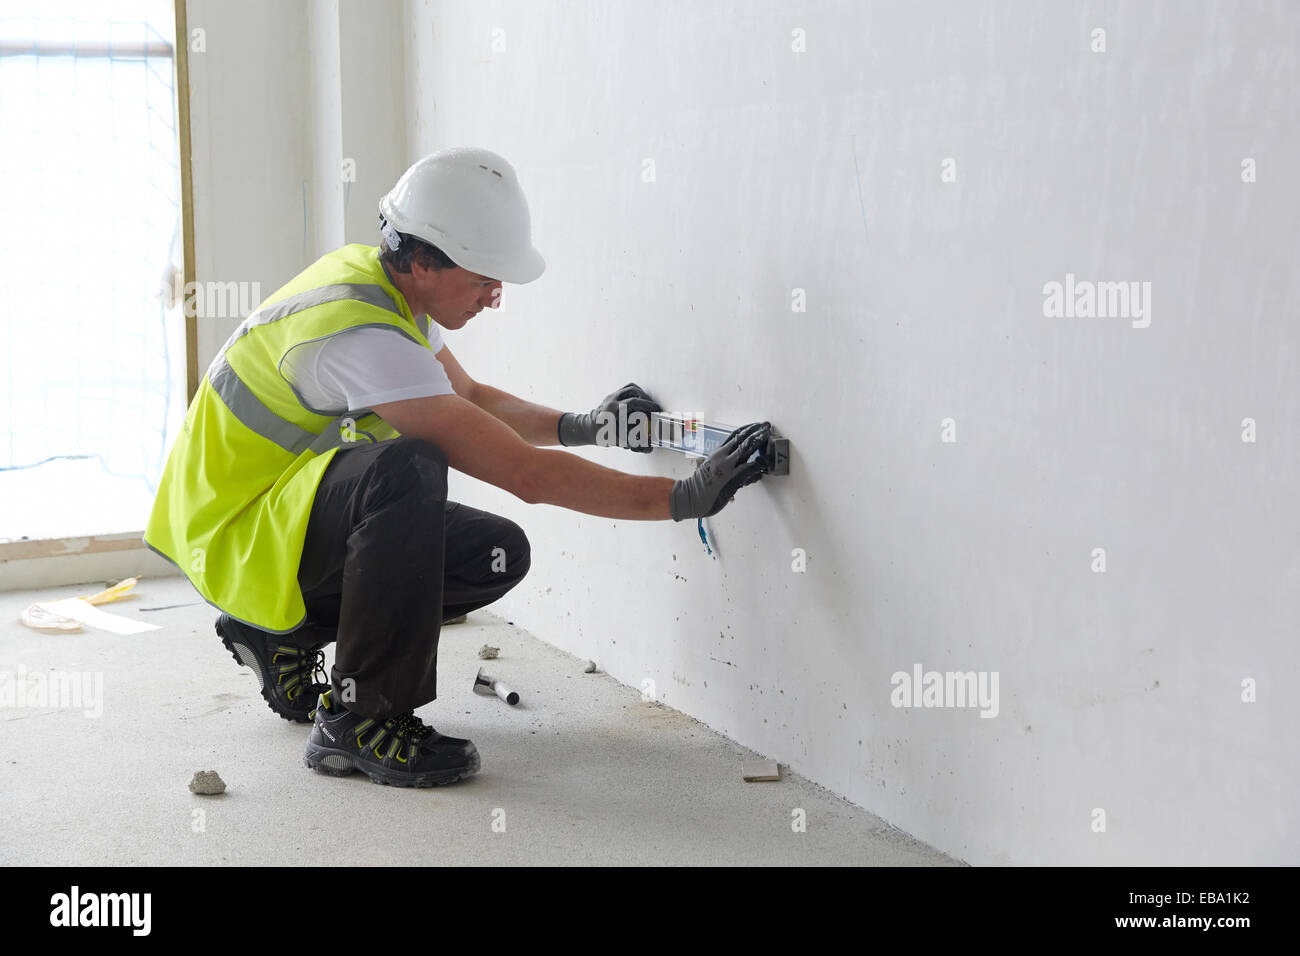 Construction worker with a level. Construction of residential building. Donostia. San Sebastian. Gipuzkoa. Basque - Stock Image